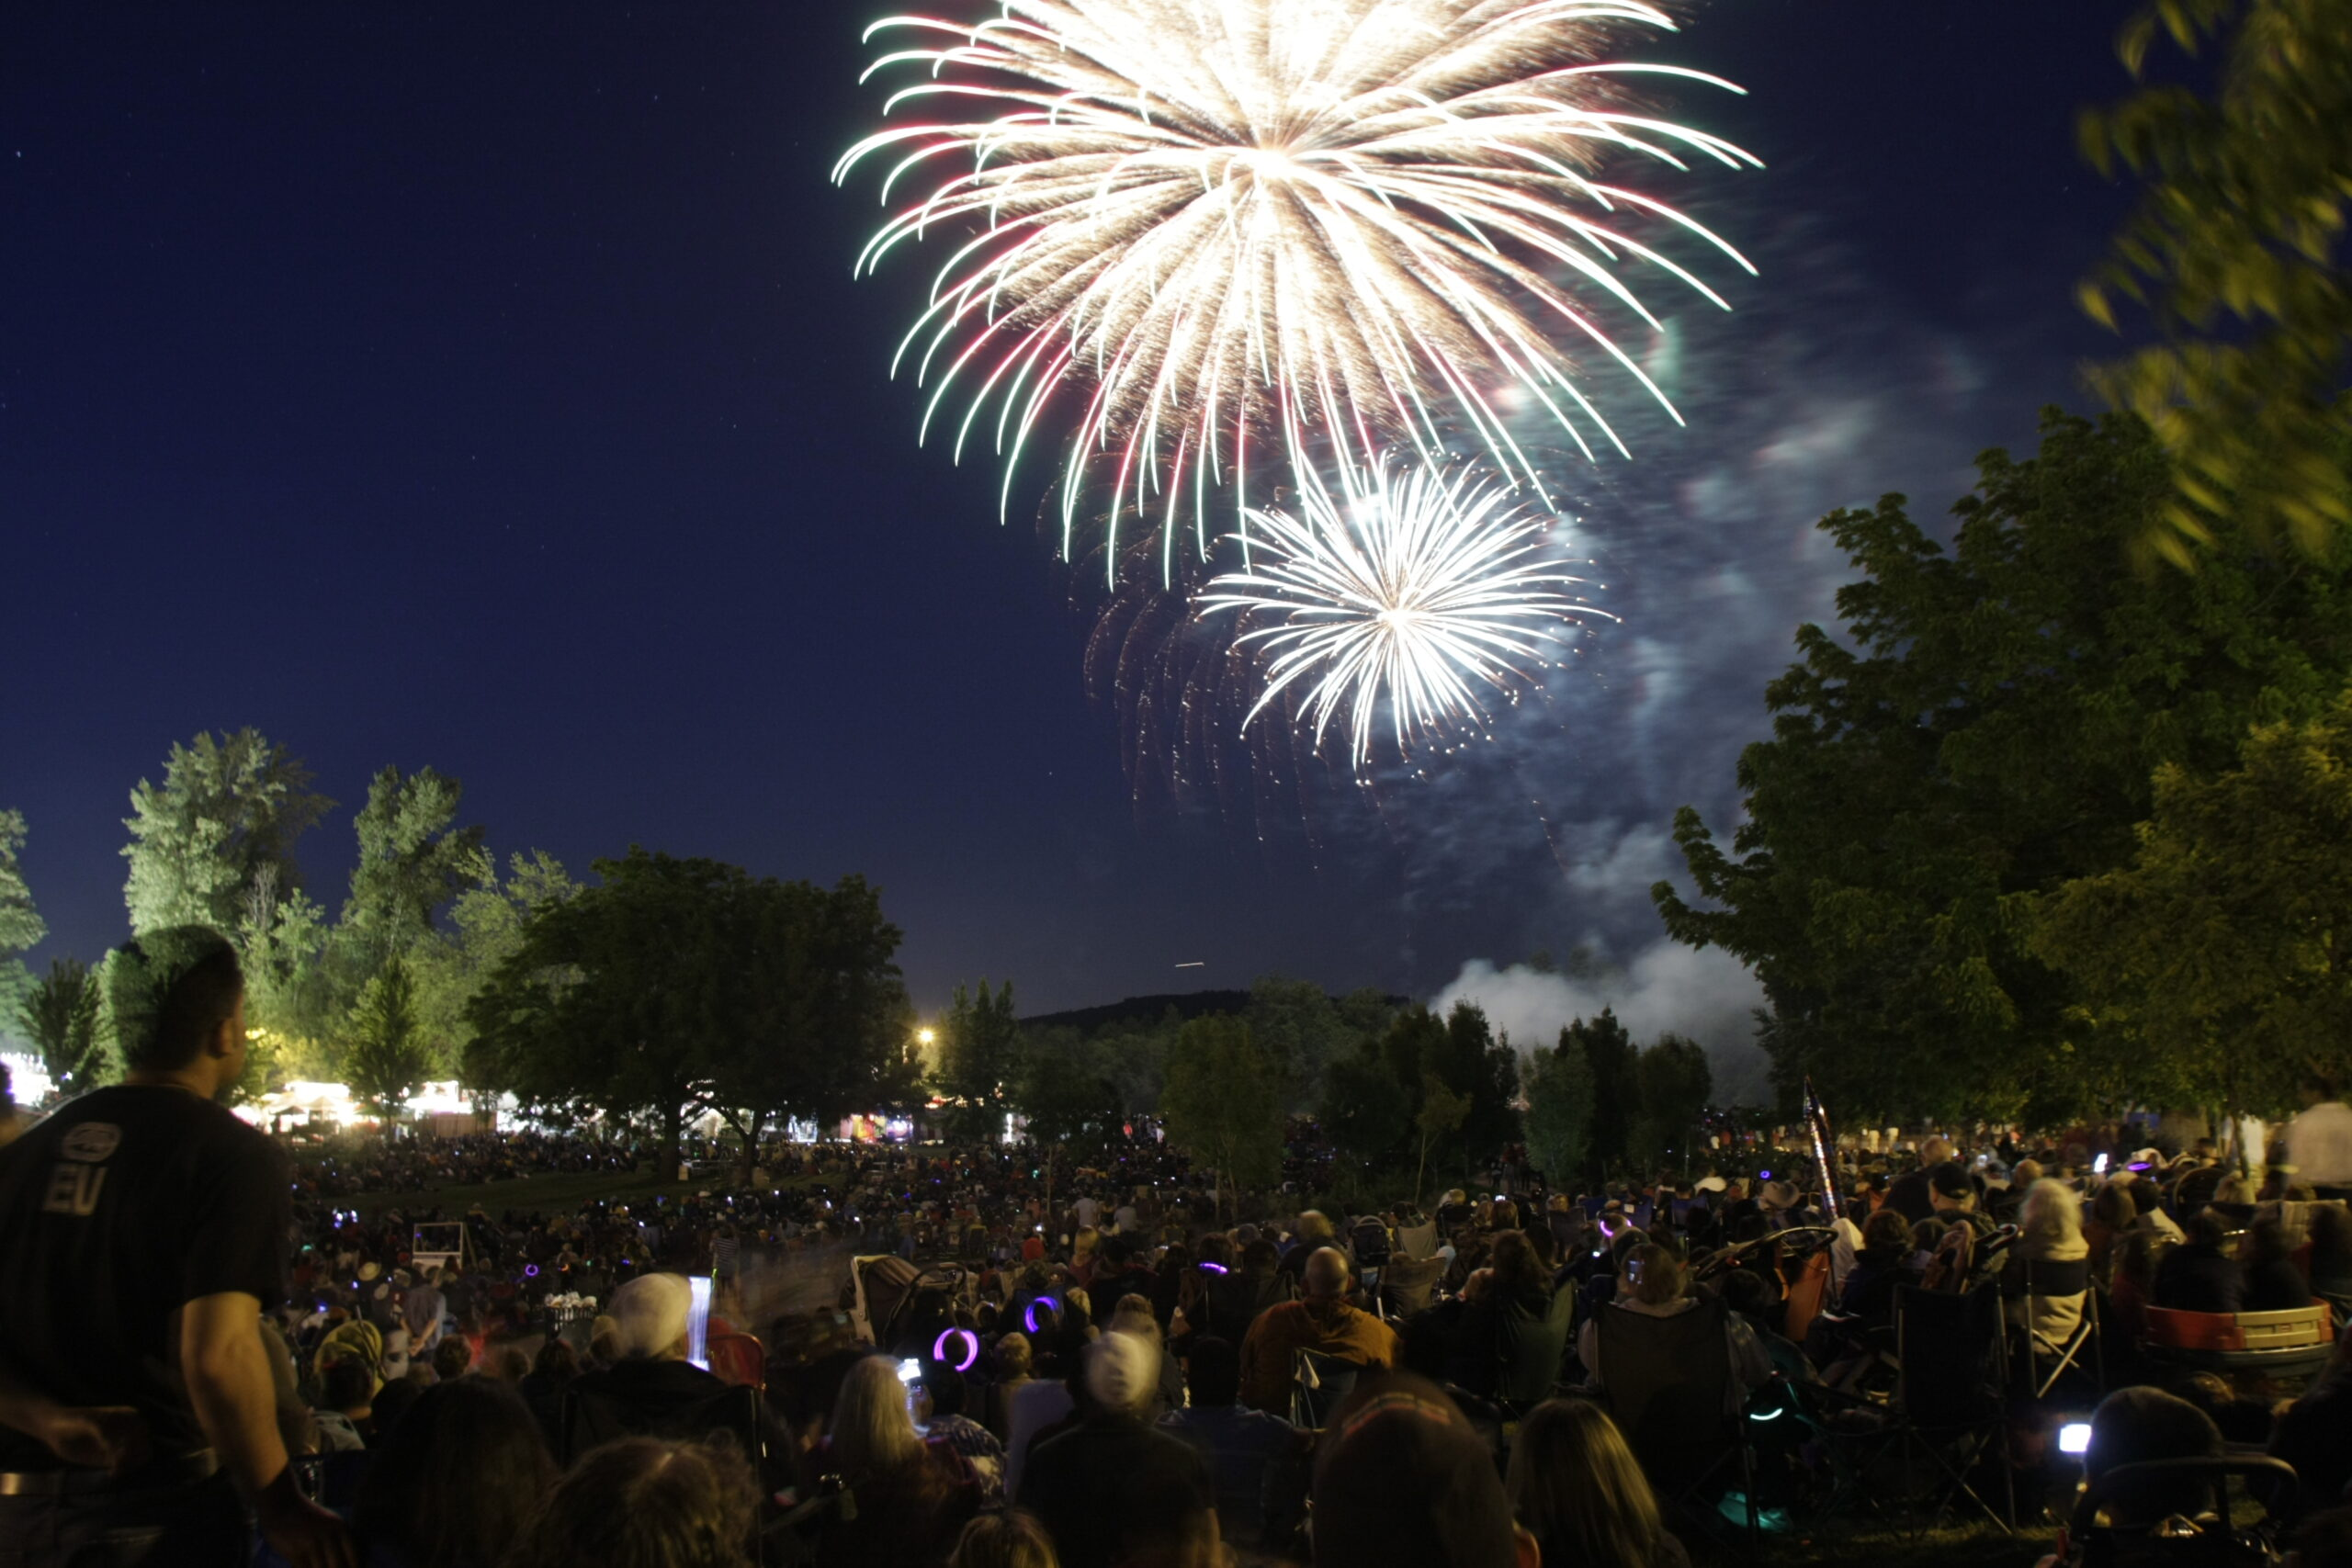 A large crowd watching fireworks